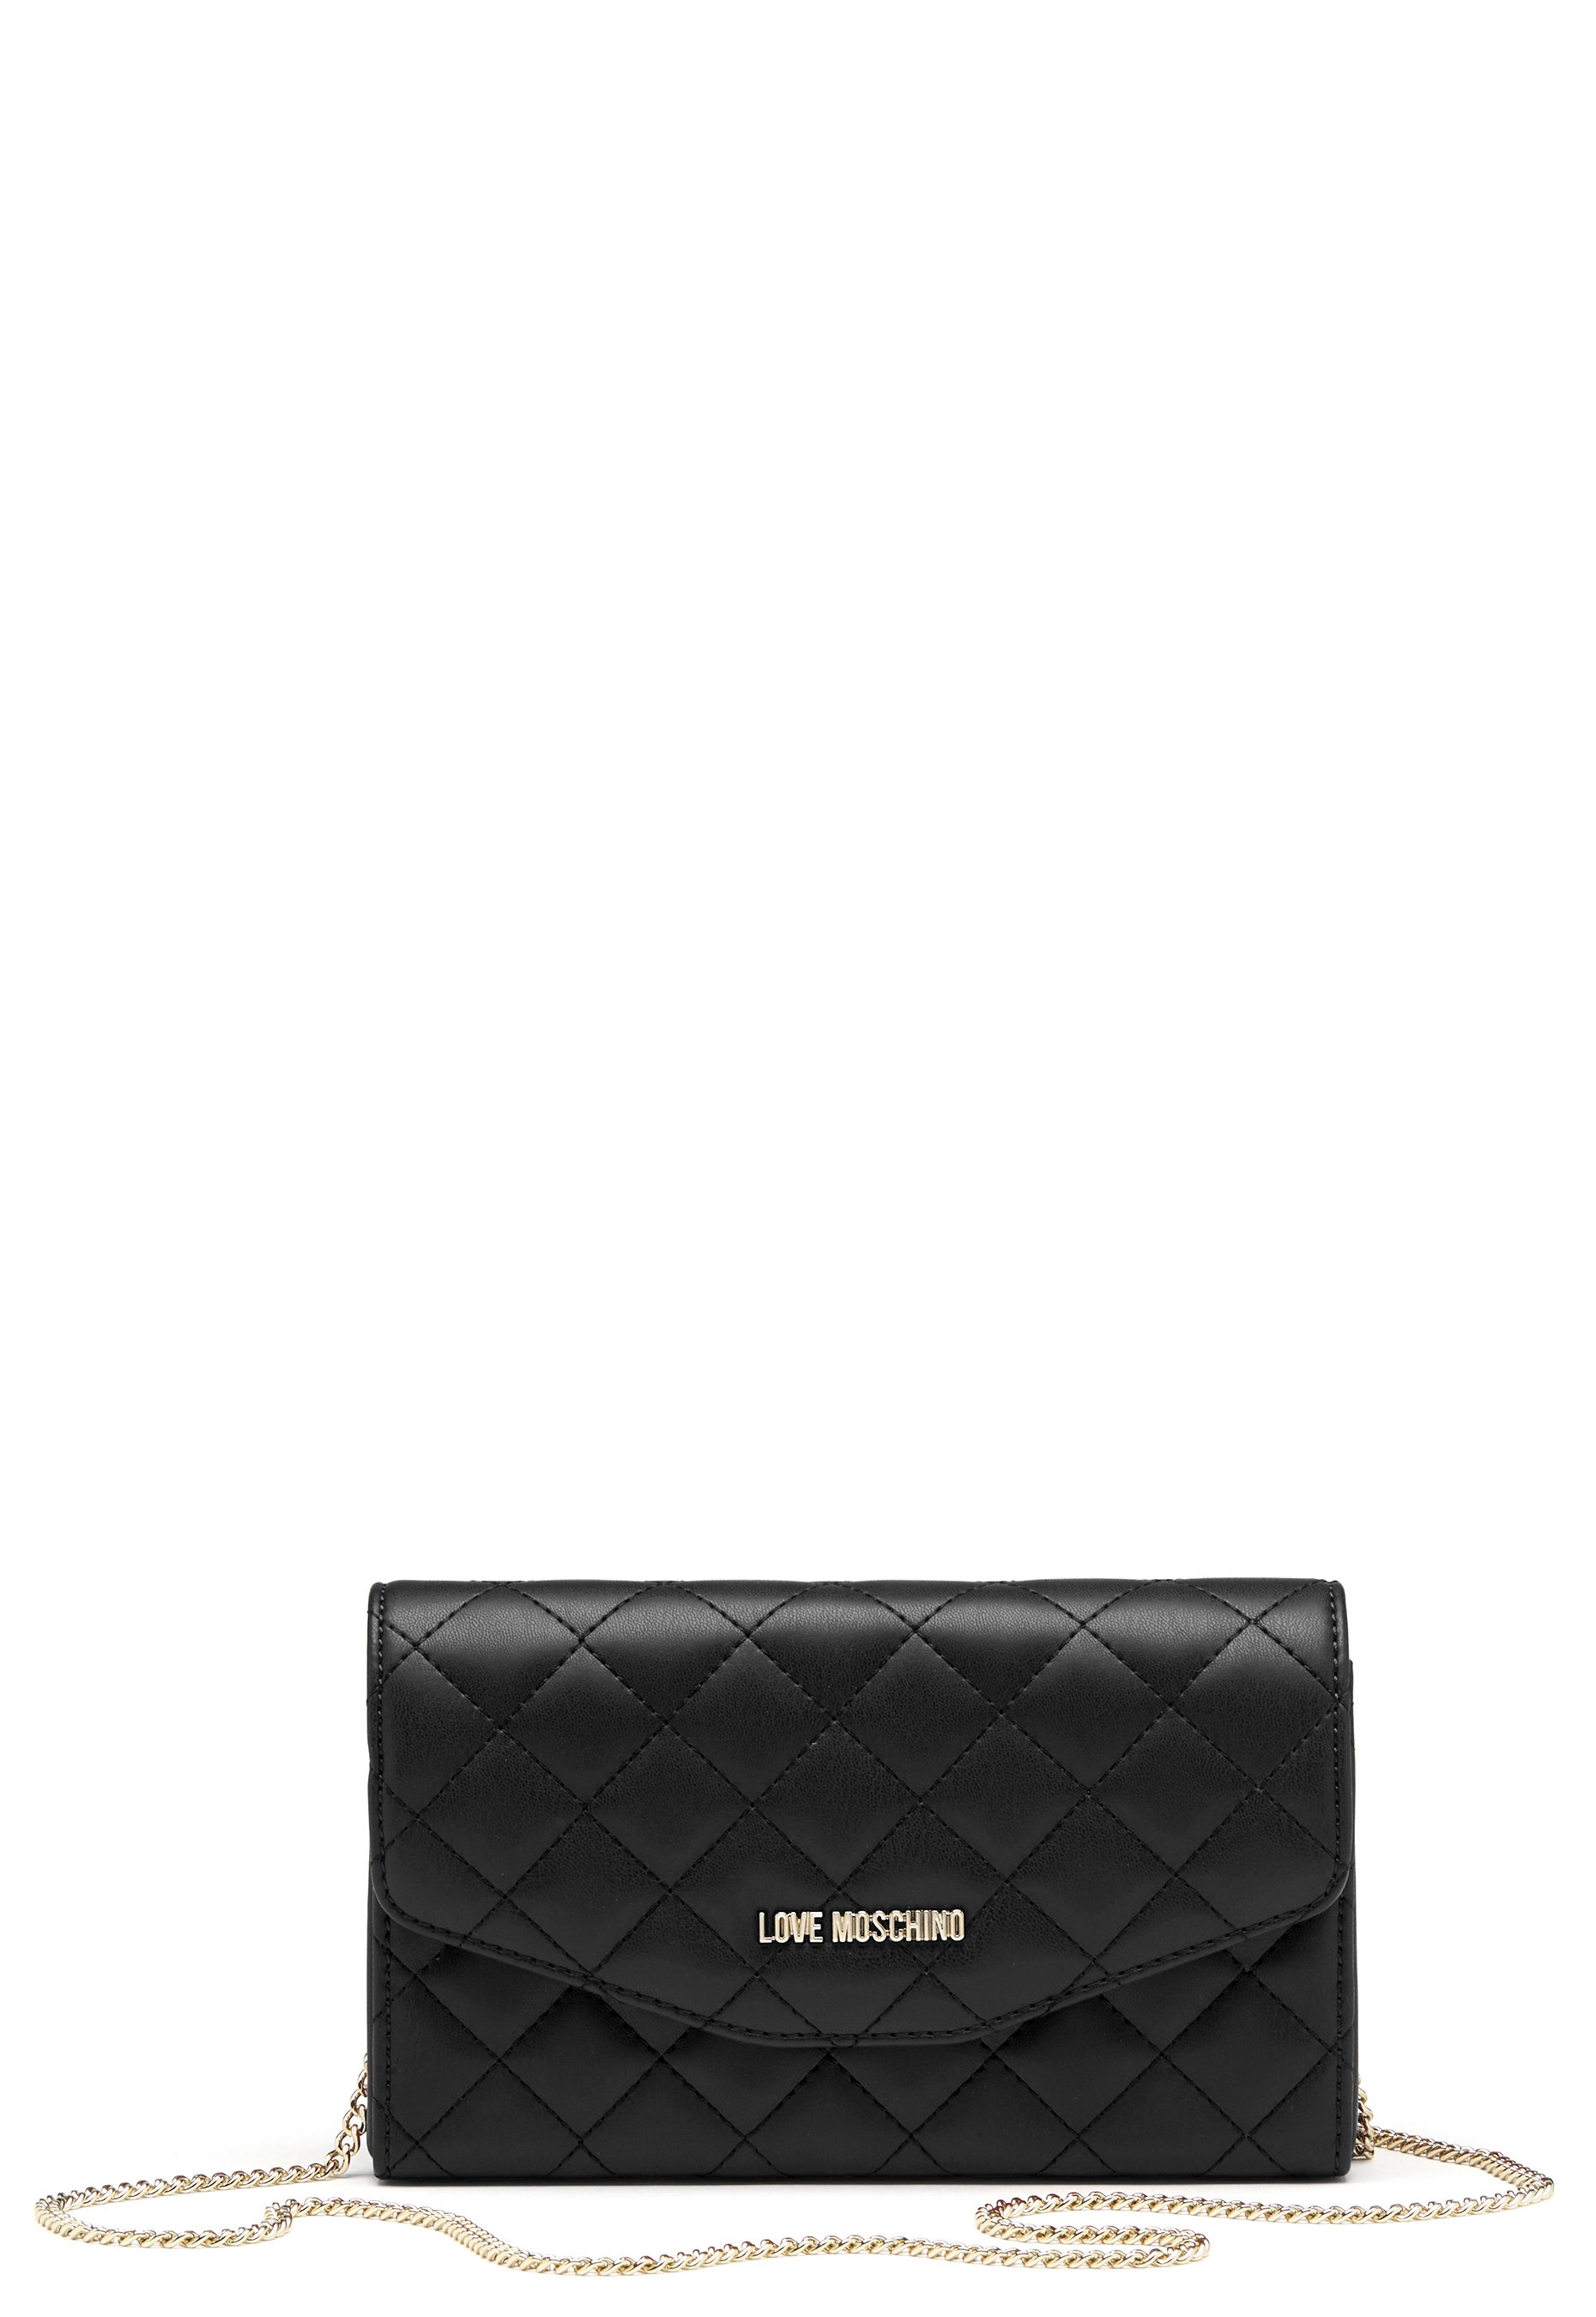 Love Moschino Small Bag 000 Black Bubbleroom